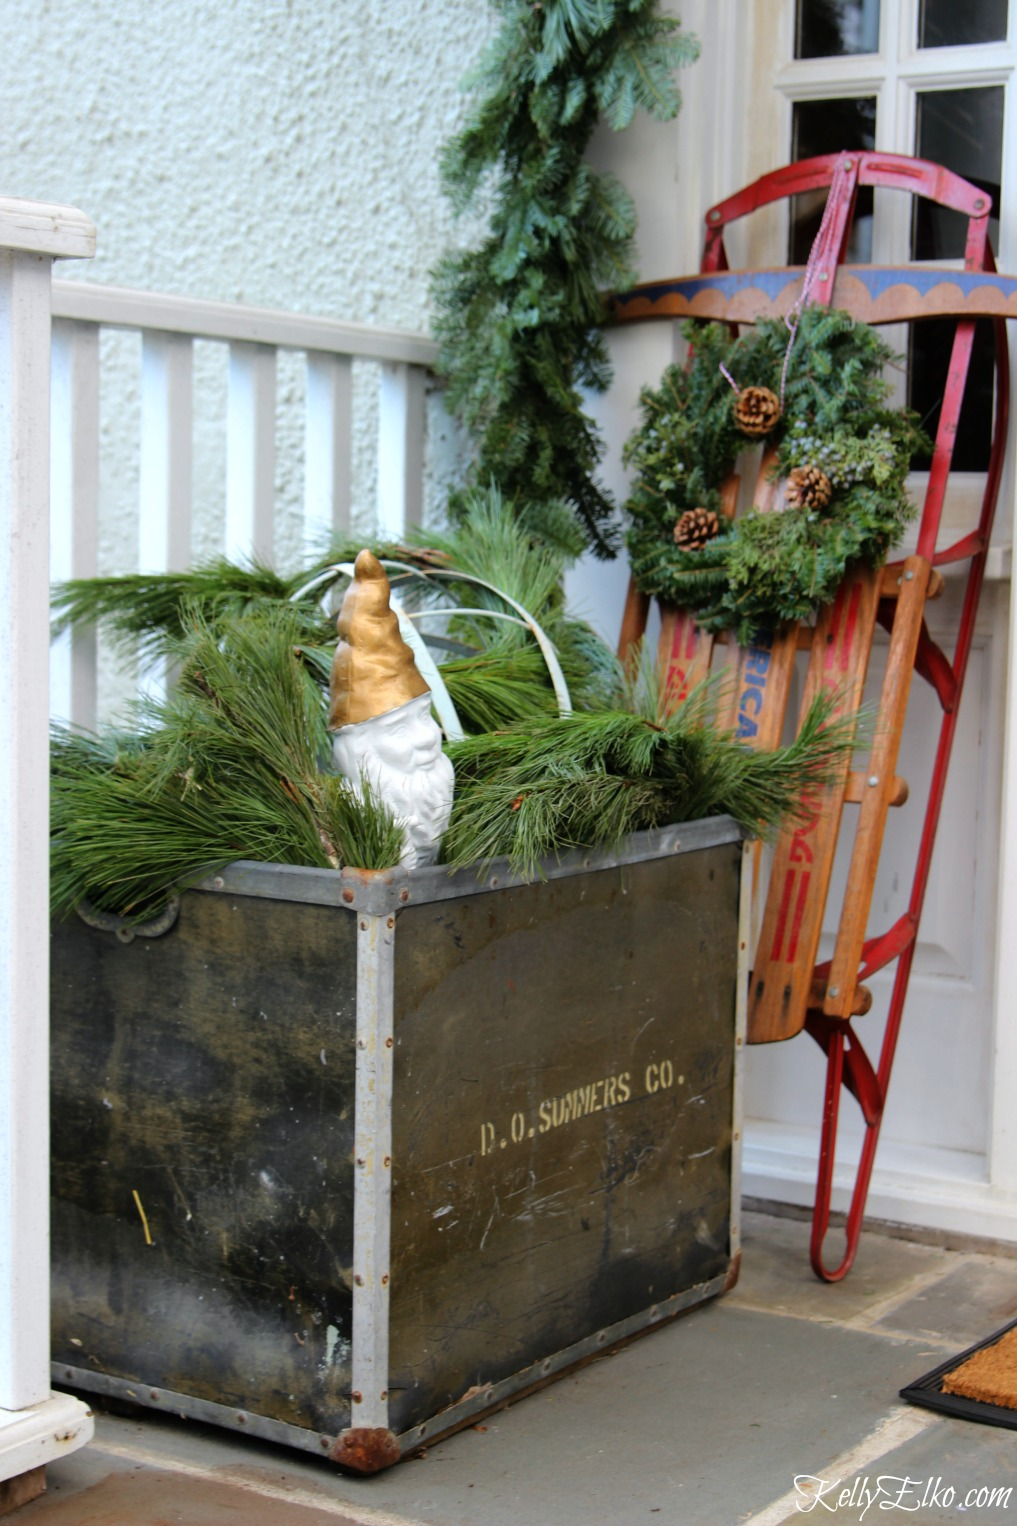 Vintage Christmas porch - love the old container planter and sled kellyelko.com